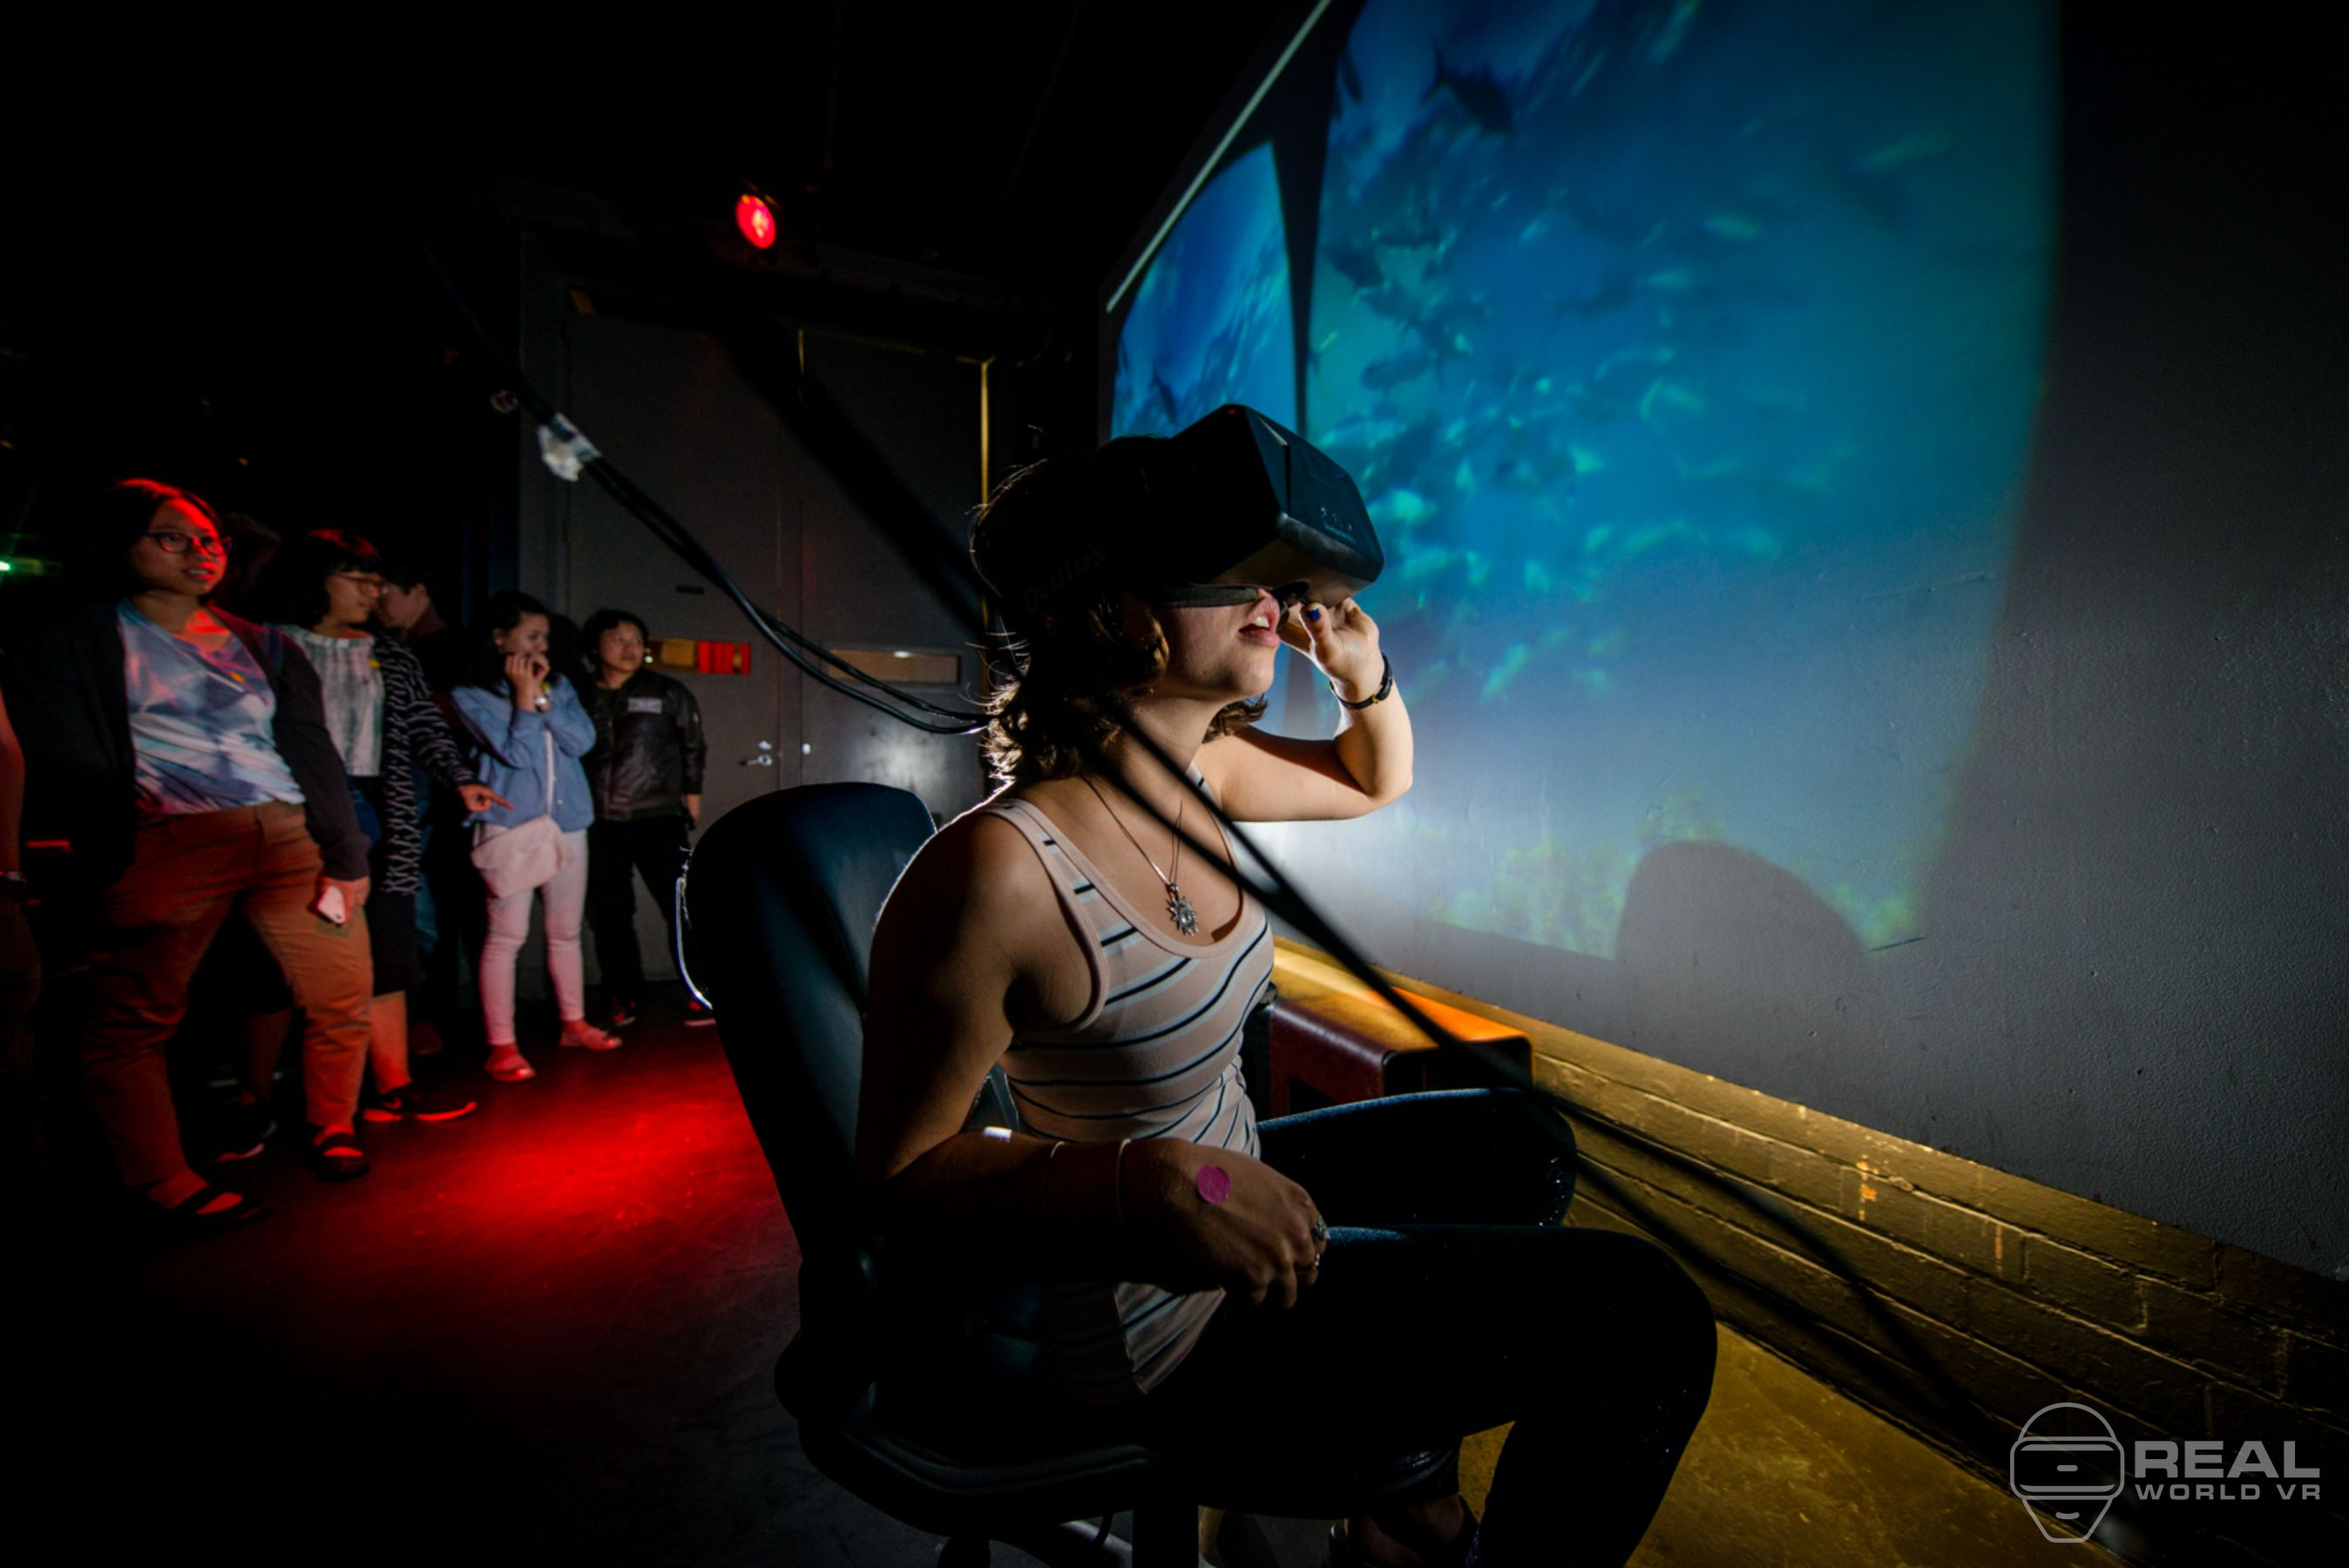 Real World Vr Oculus Rift event melbourne virtual reality